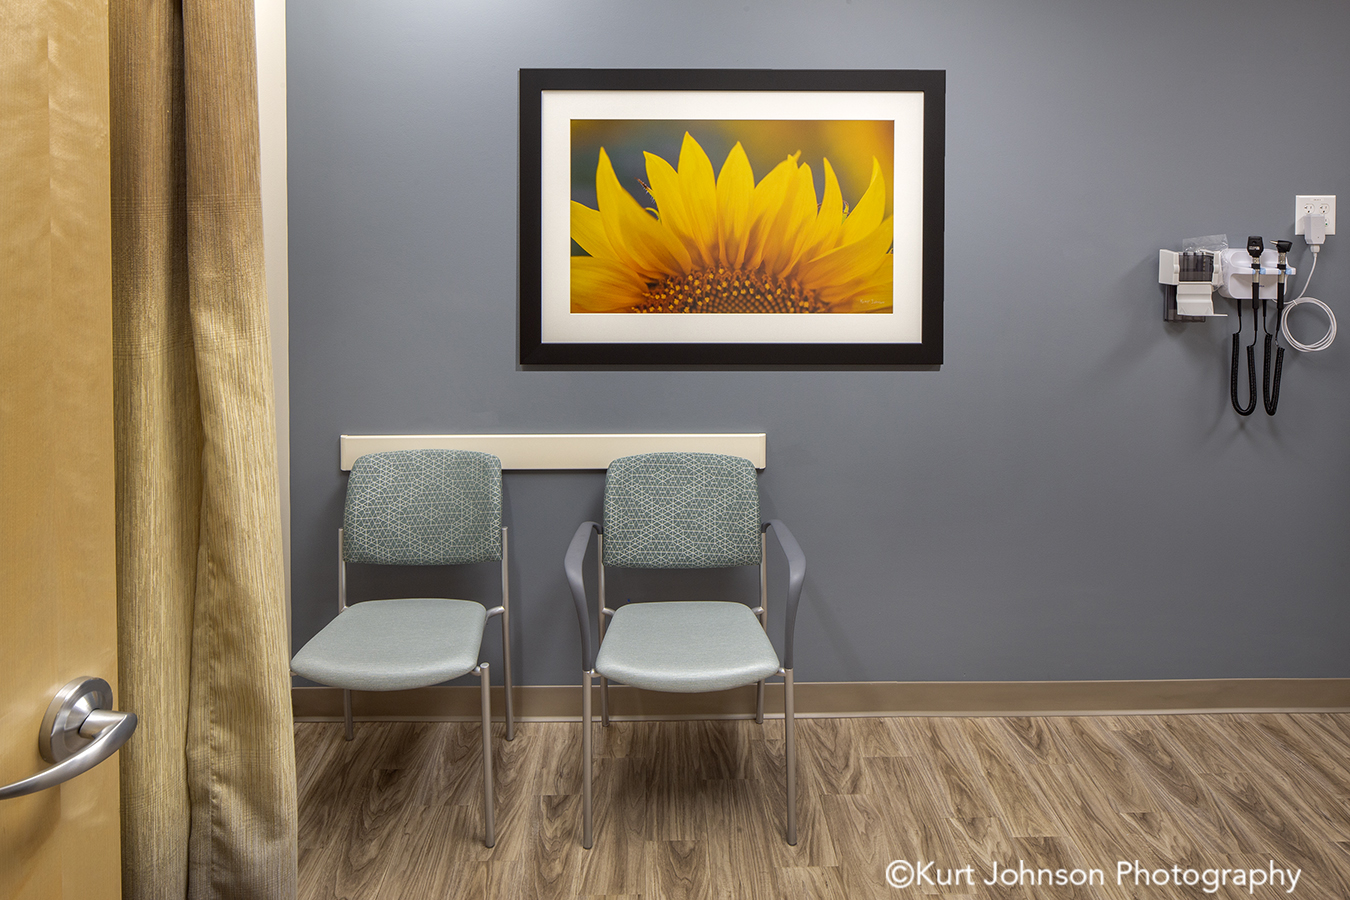 Allina Health art install healthcare installation yellow flower sunflower framed botanical design